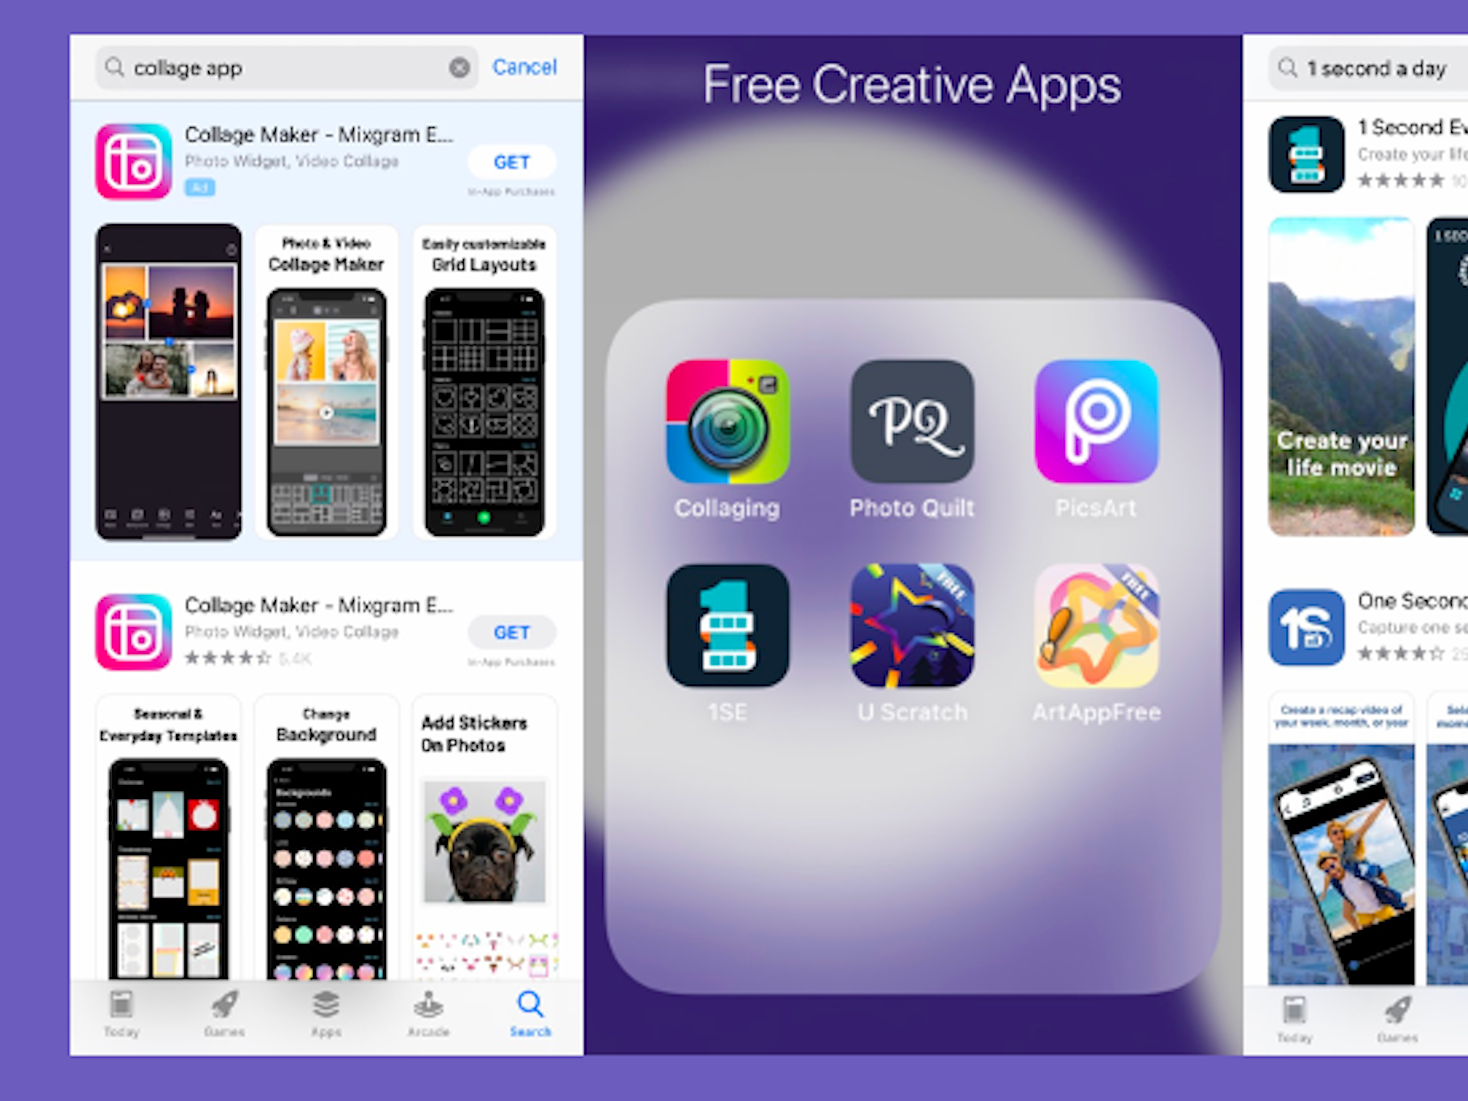 A collage of screenshots displaying creative phone applications